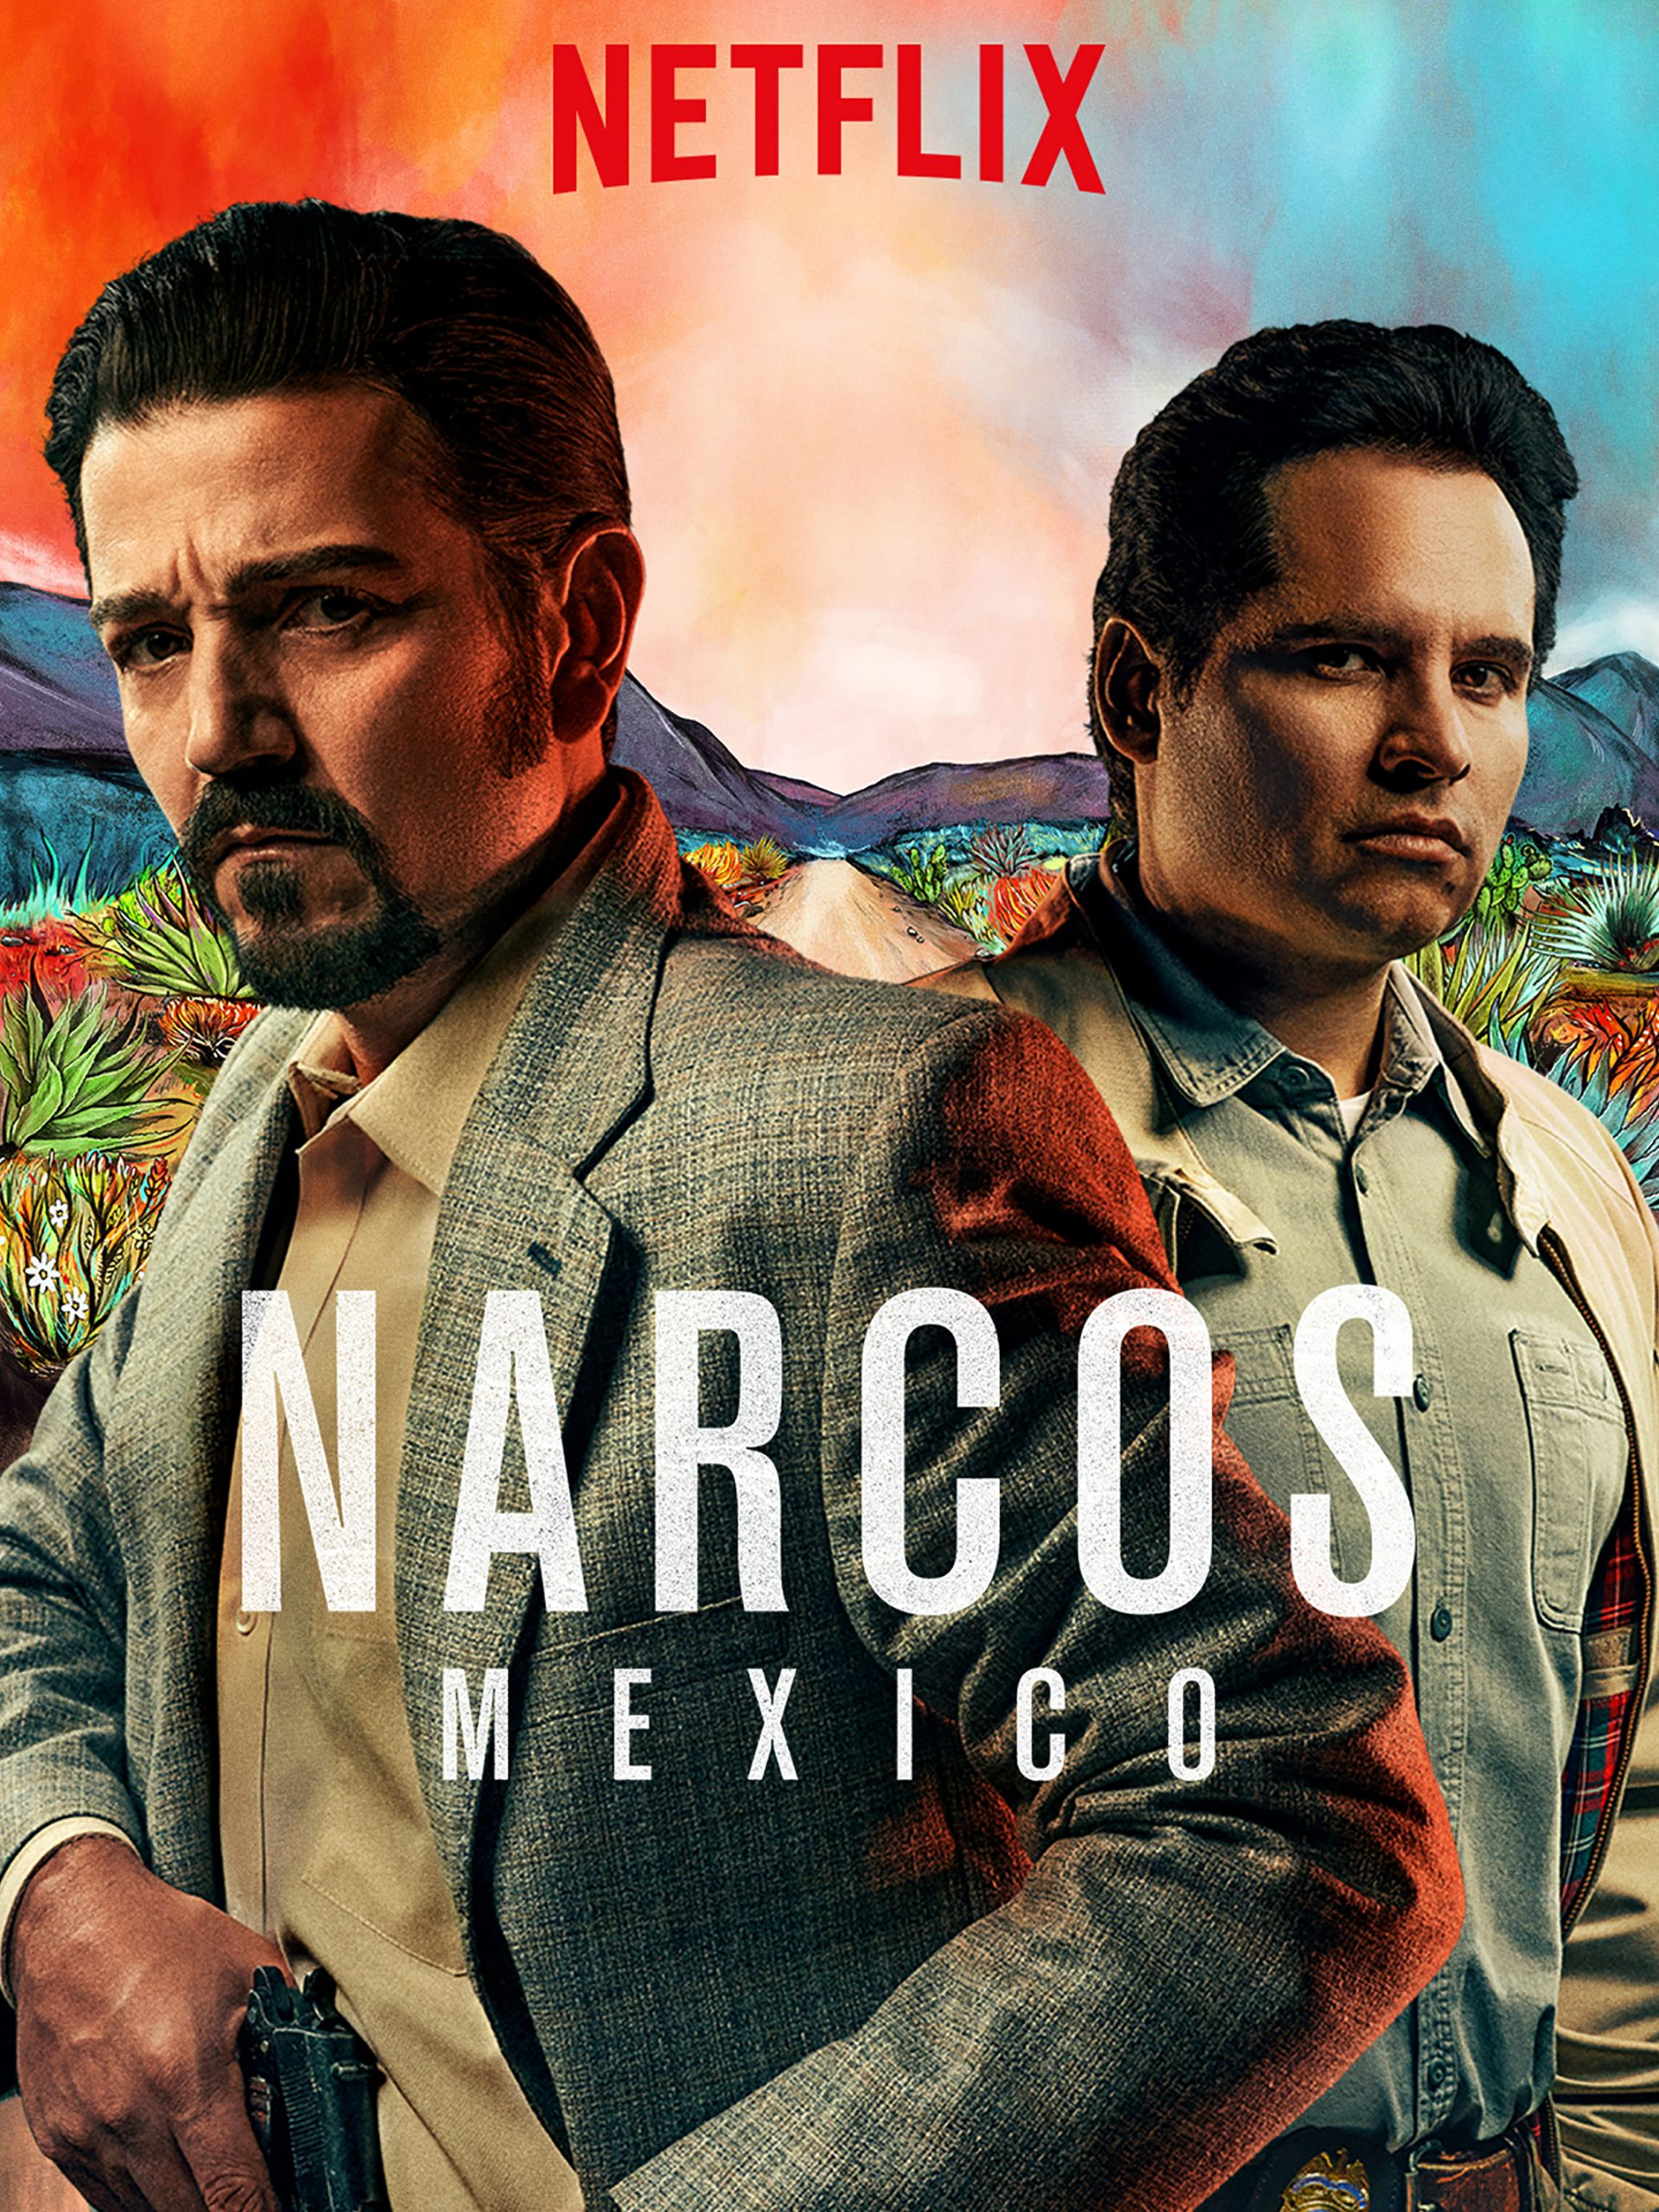 Narcos: Mexico (2020) S2 Hindi Dubbed Complete NF Series 720p HDRip 2.7GB Download